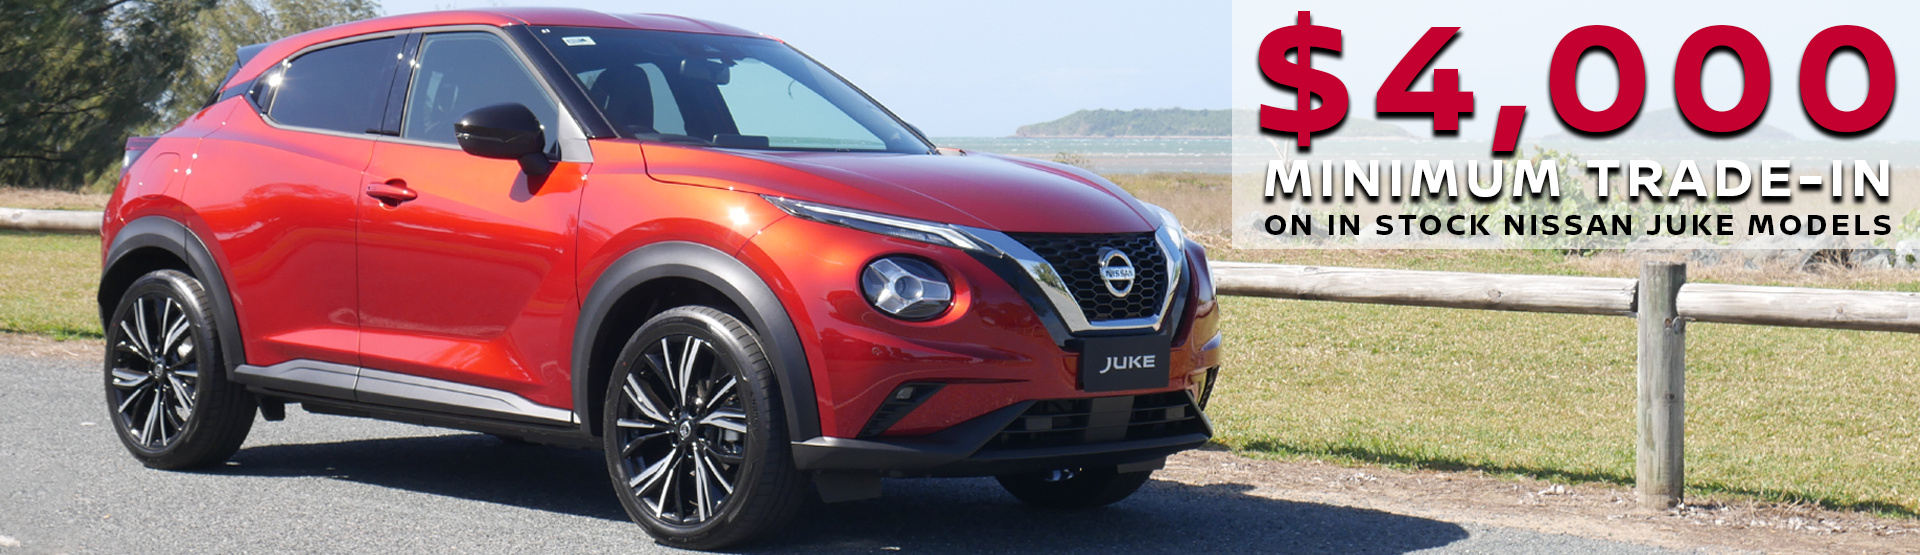 North Jacklin Nissan Juke Offer